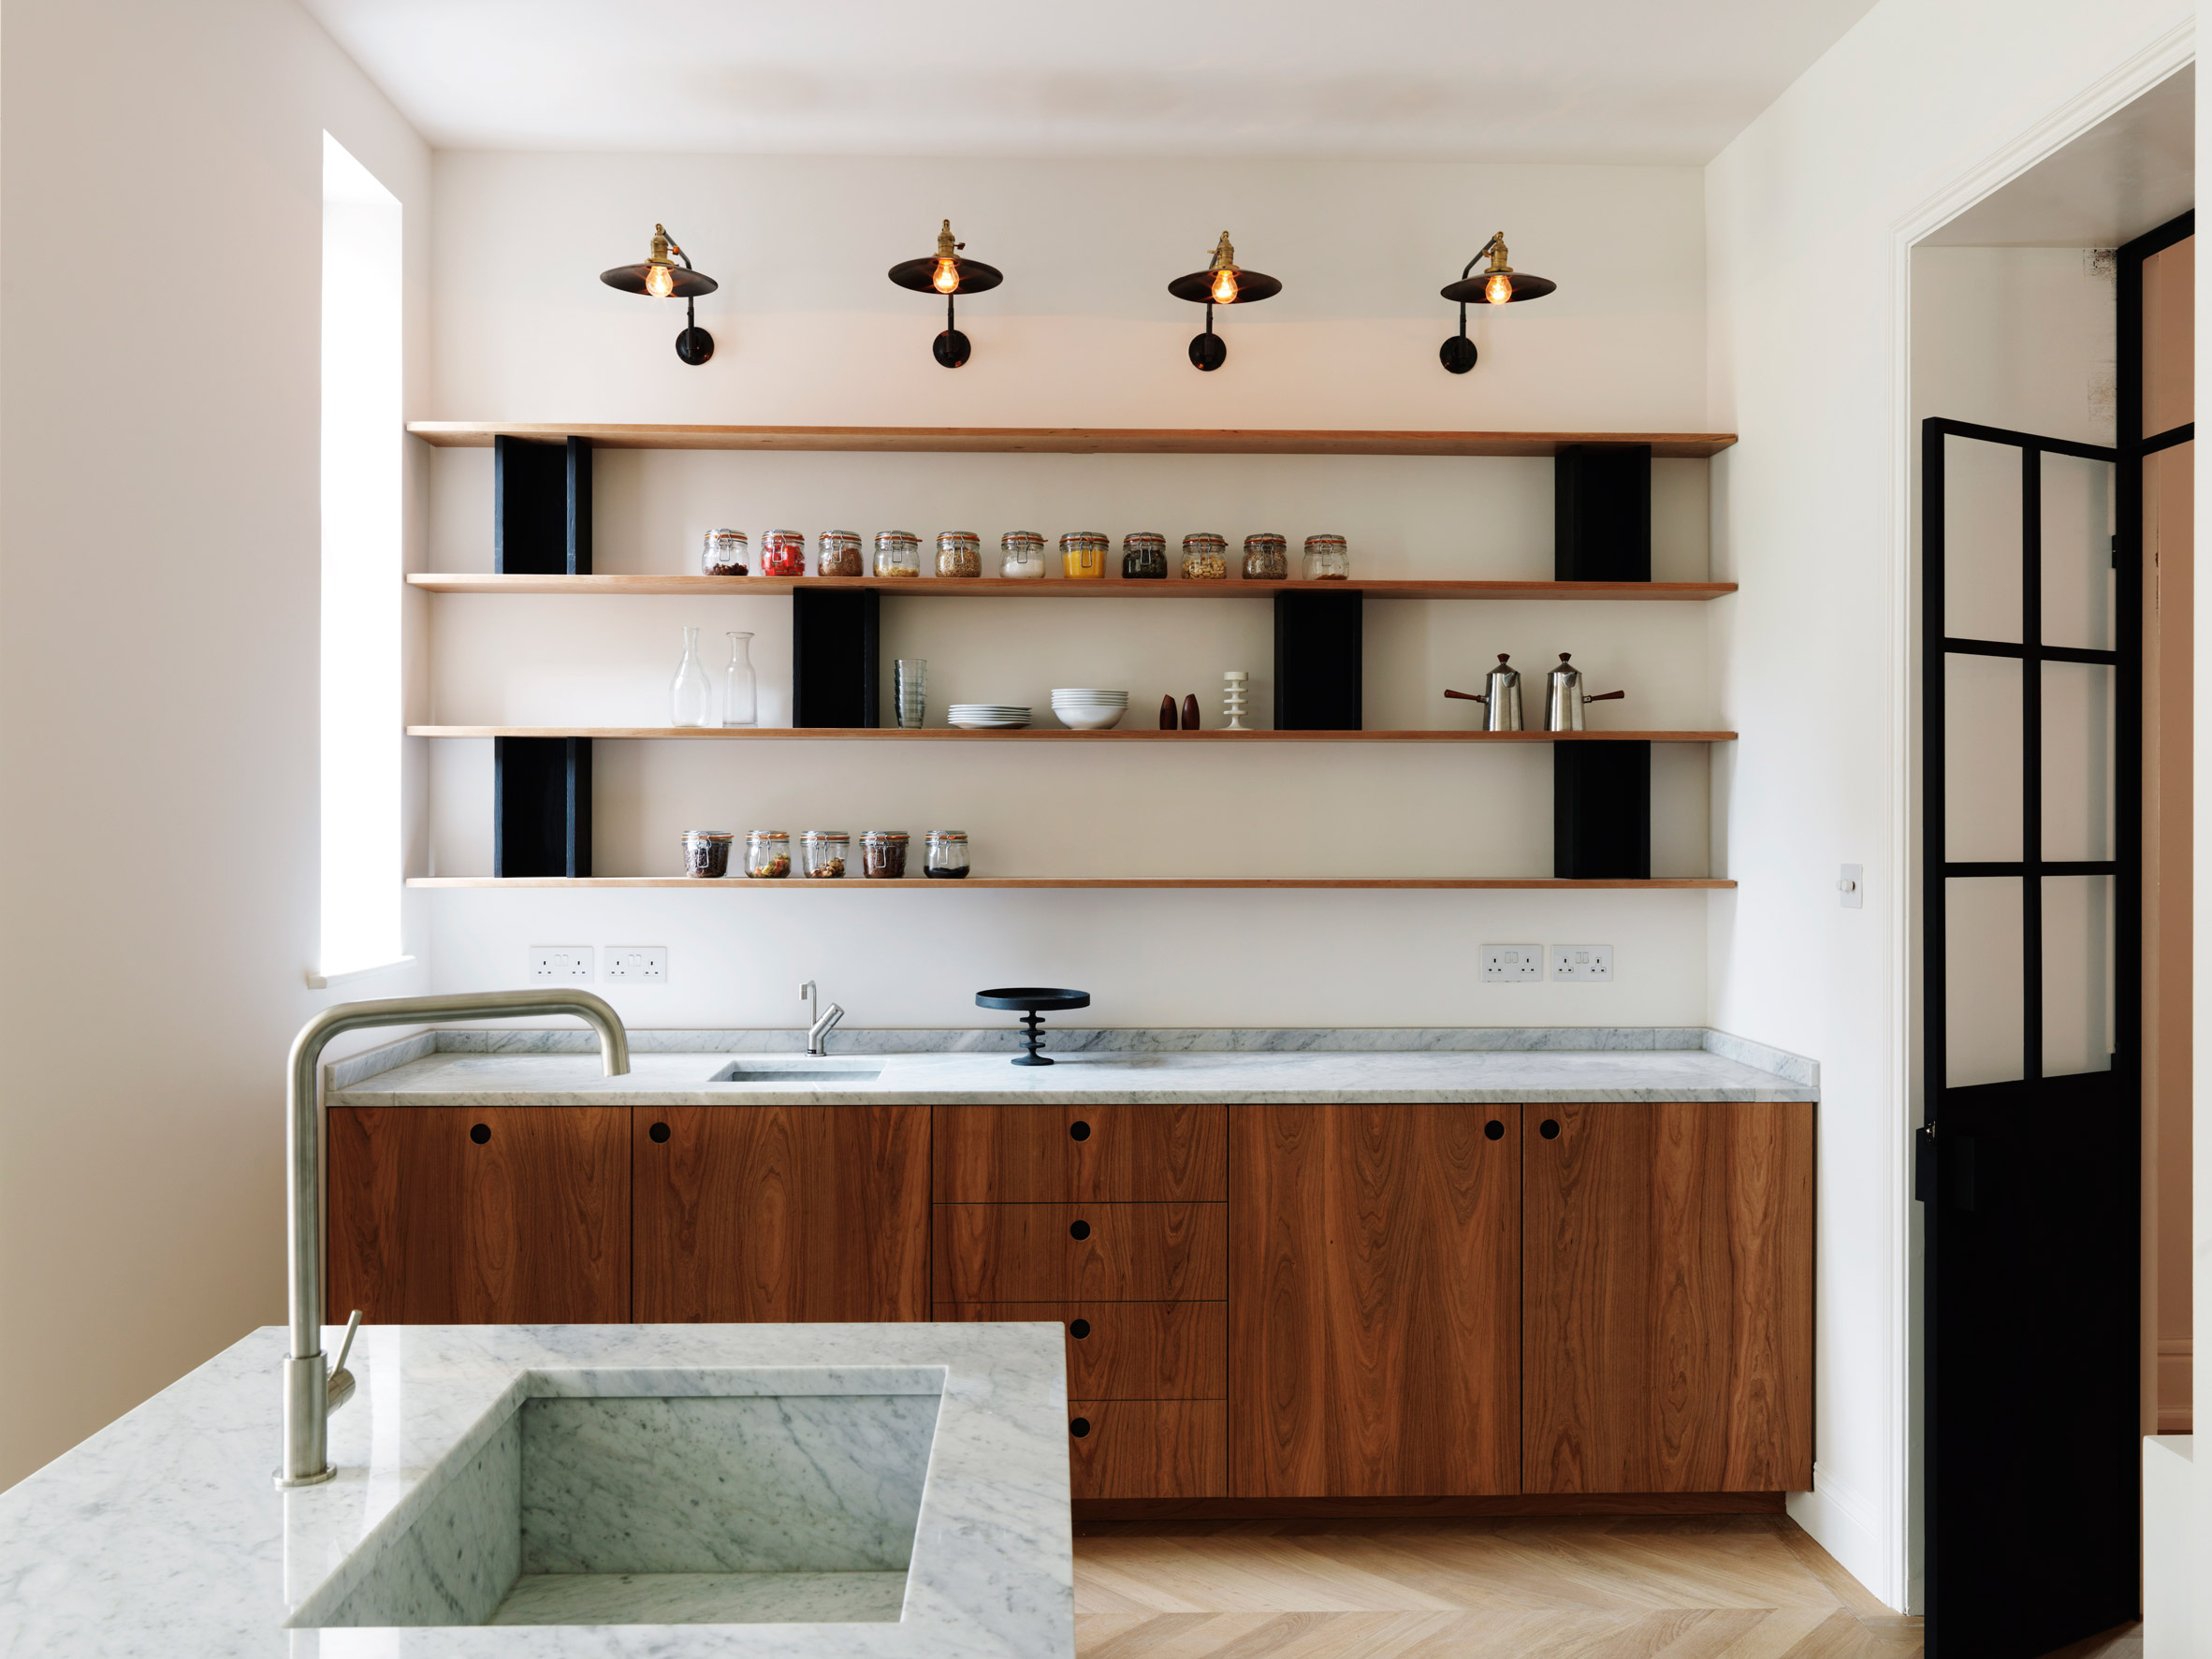 London house and garden studio overhauled with marble and cherry wood